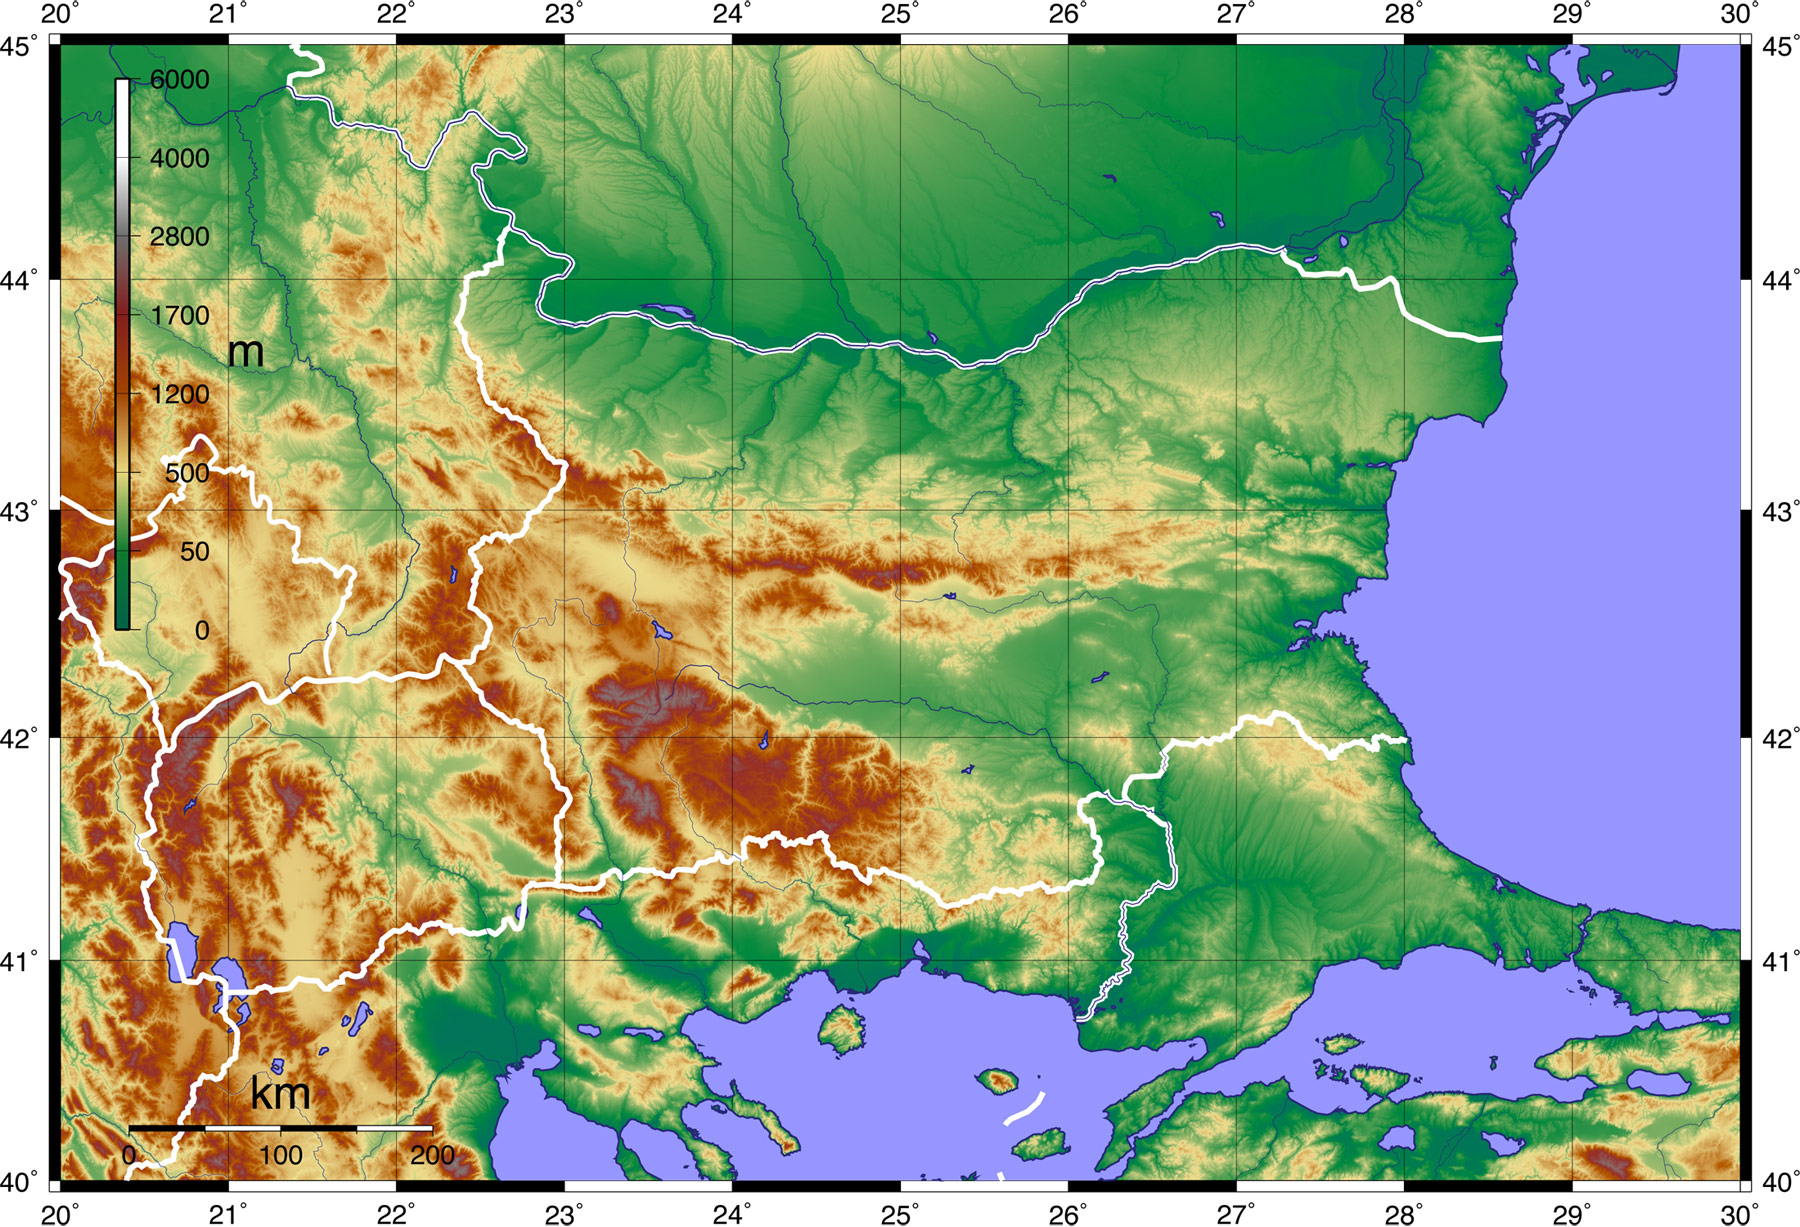 Topographic Map of Bulgaria large map